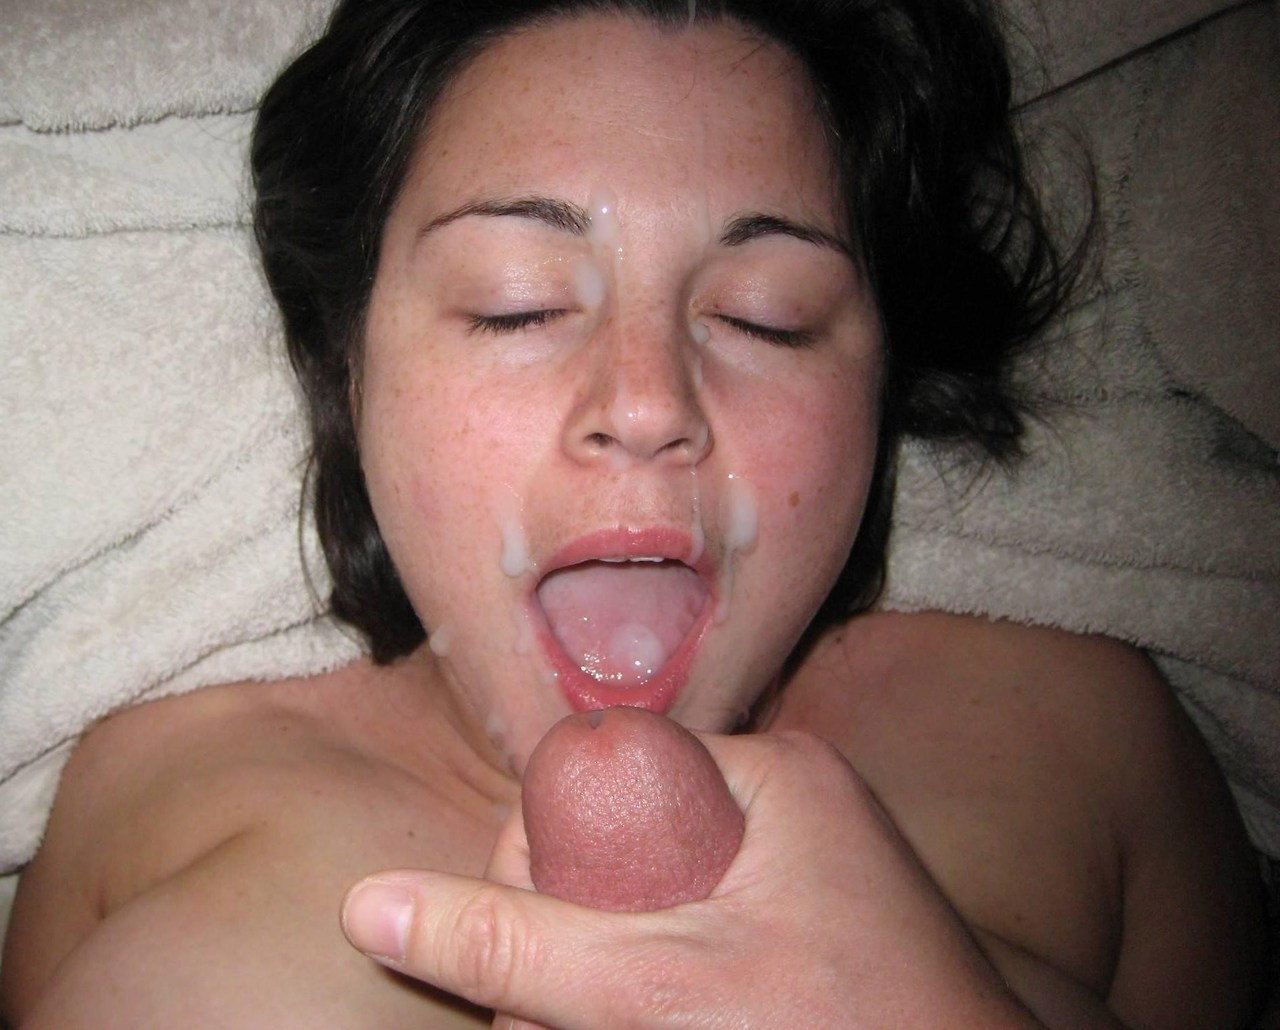 Girl dry anal pain no lube